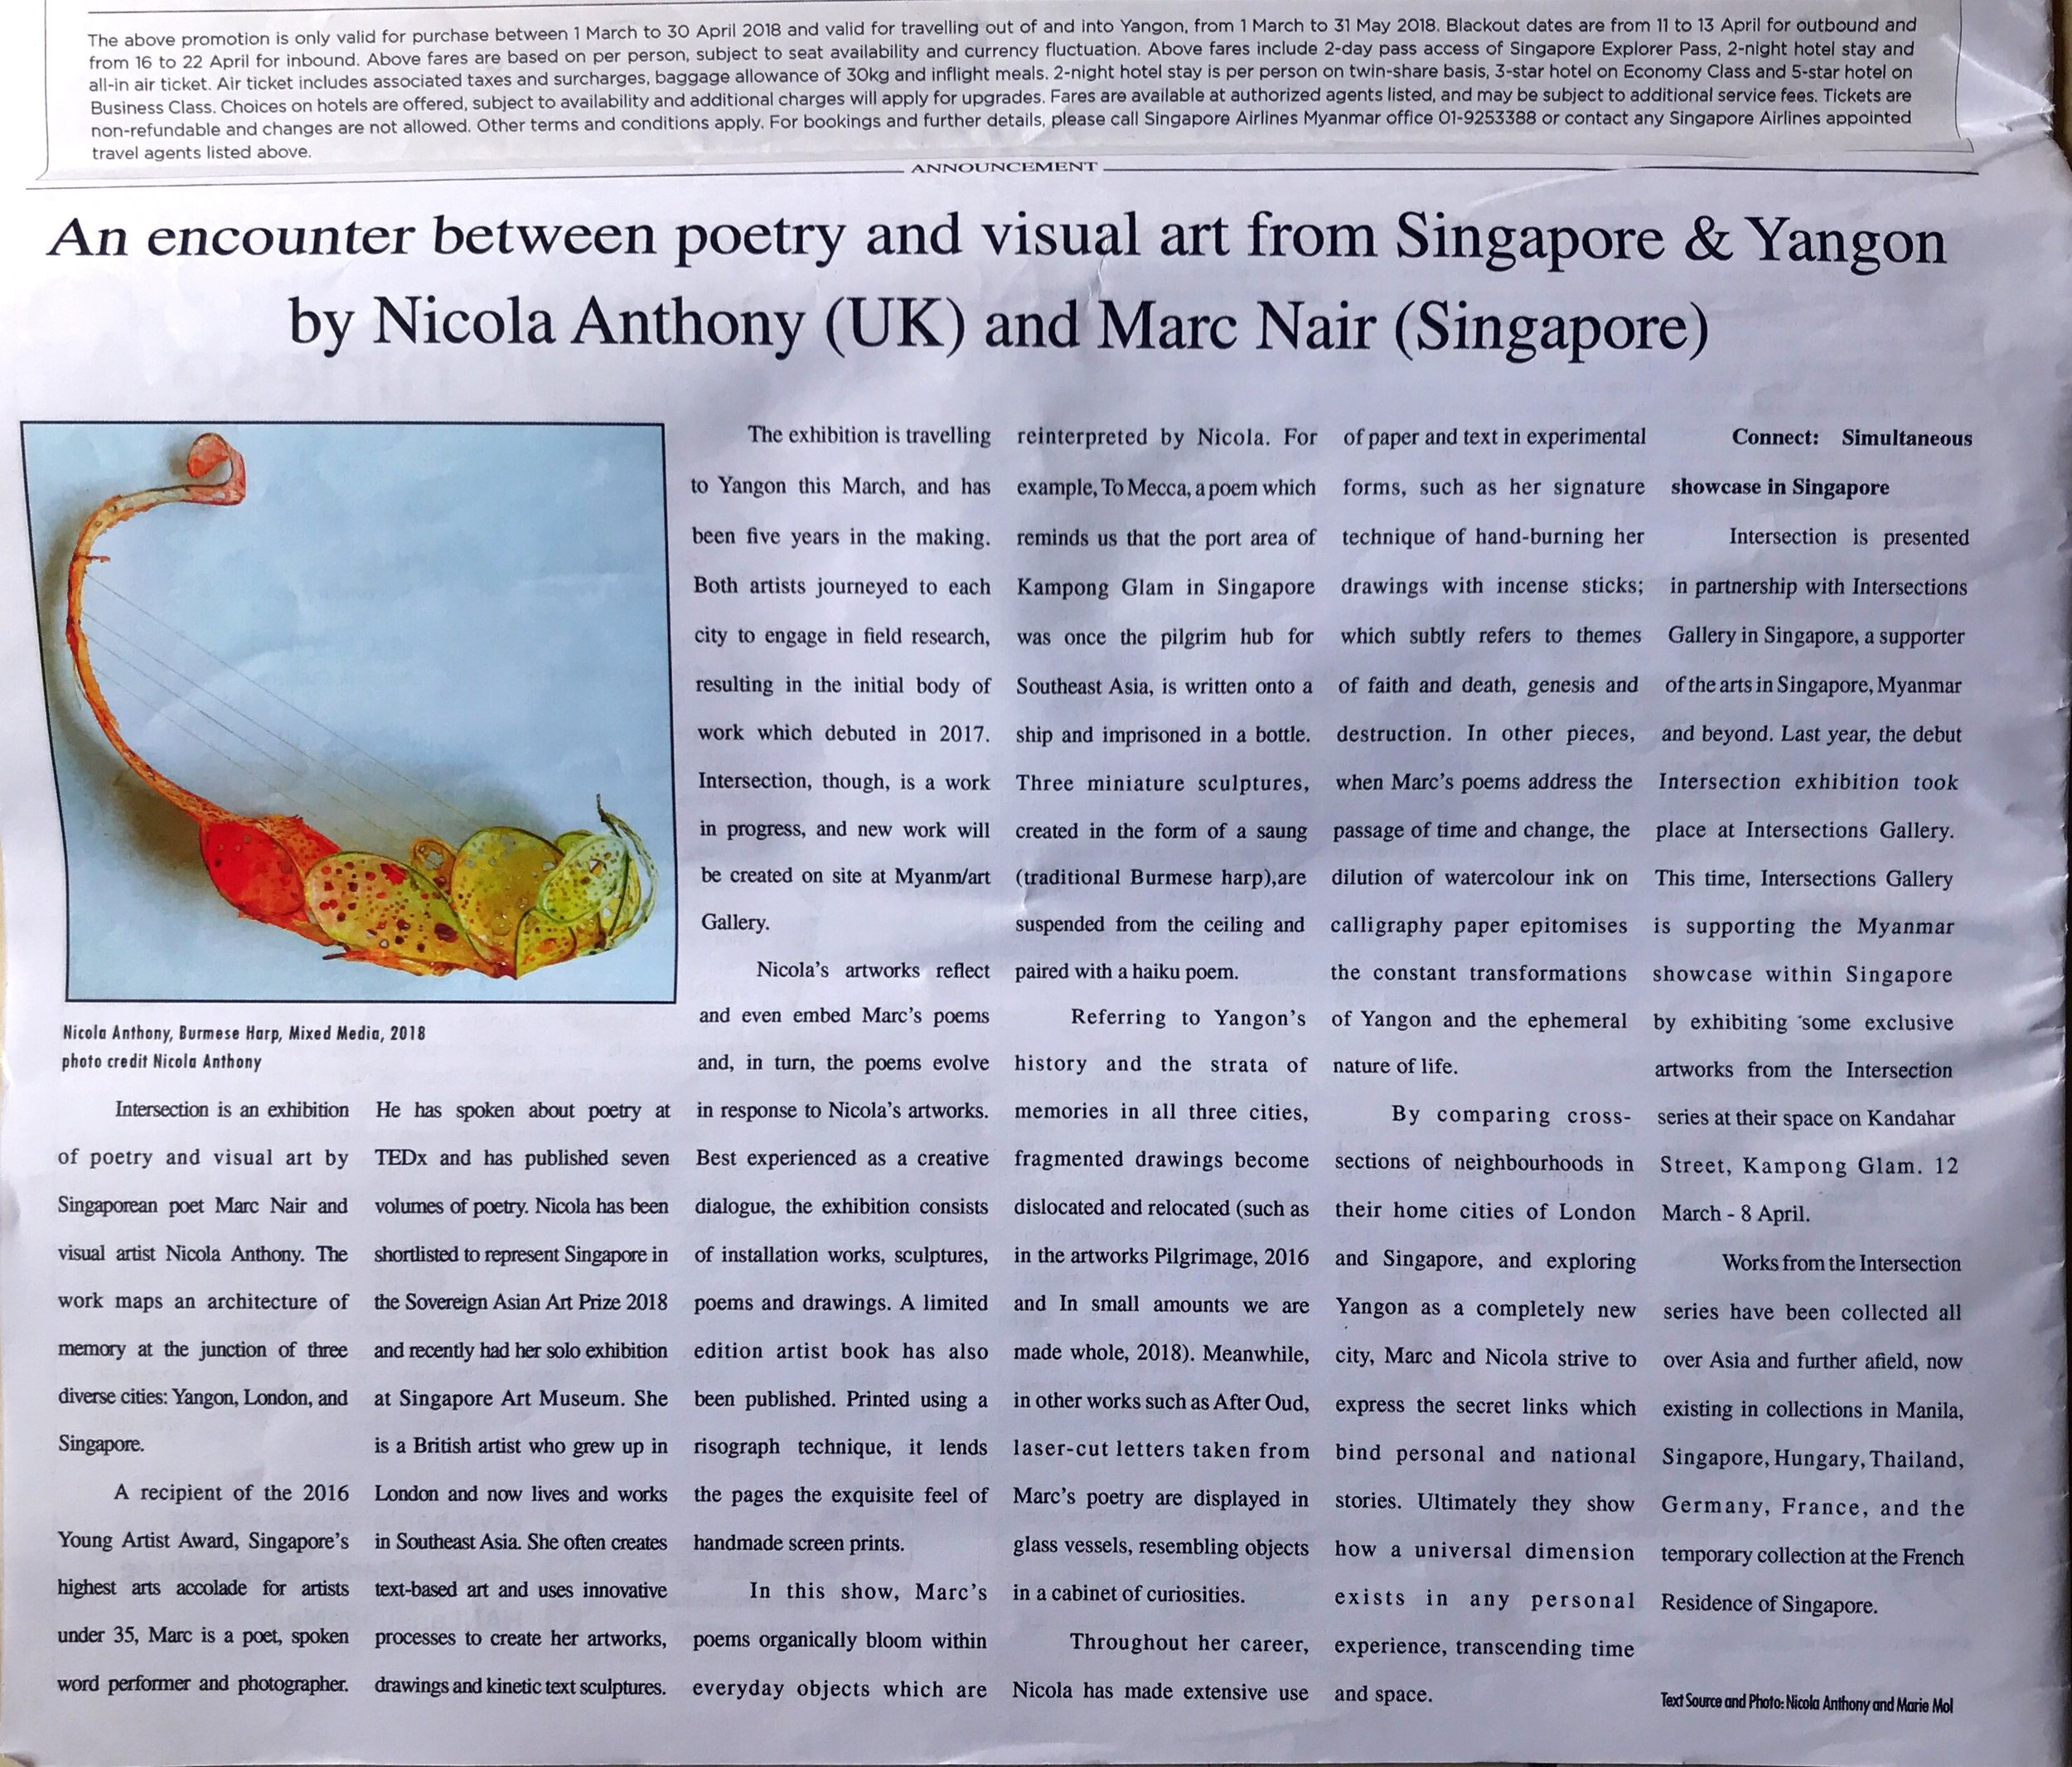 The Straits Times (Myanmar section), 'An encounter between poetry and visual art from Singapore & Yangon by Nicola Anthony (UK) and Marc Nair (Singapore)', 26 March 2018